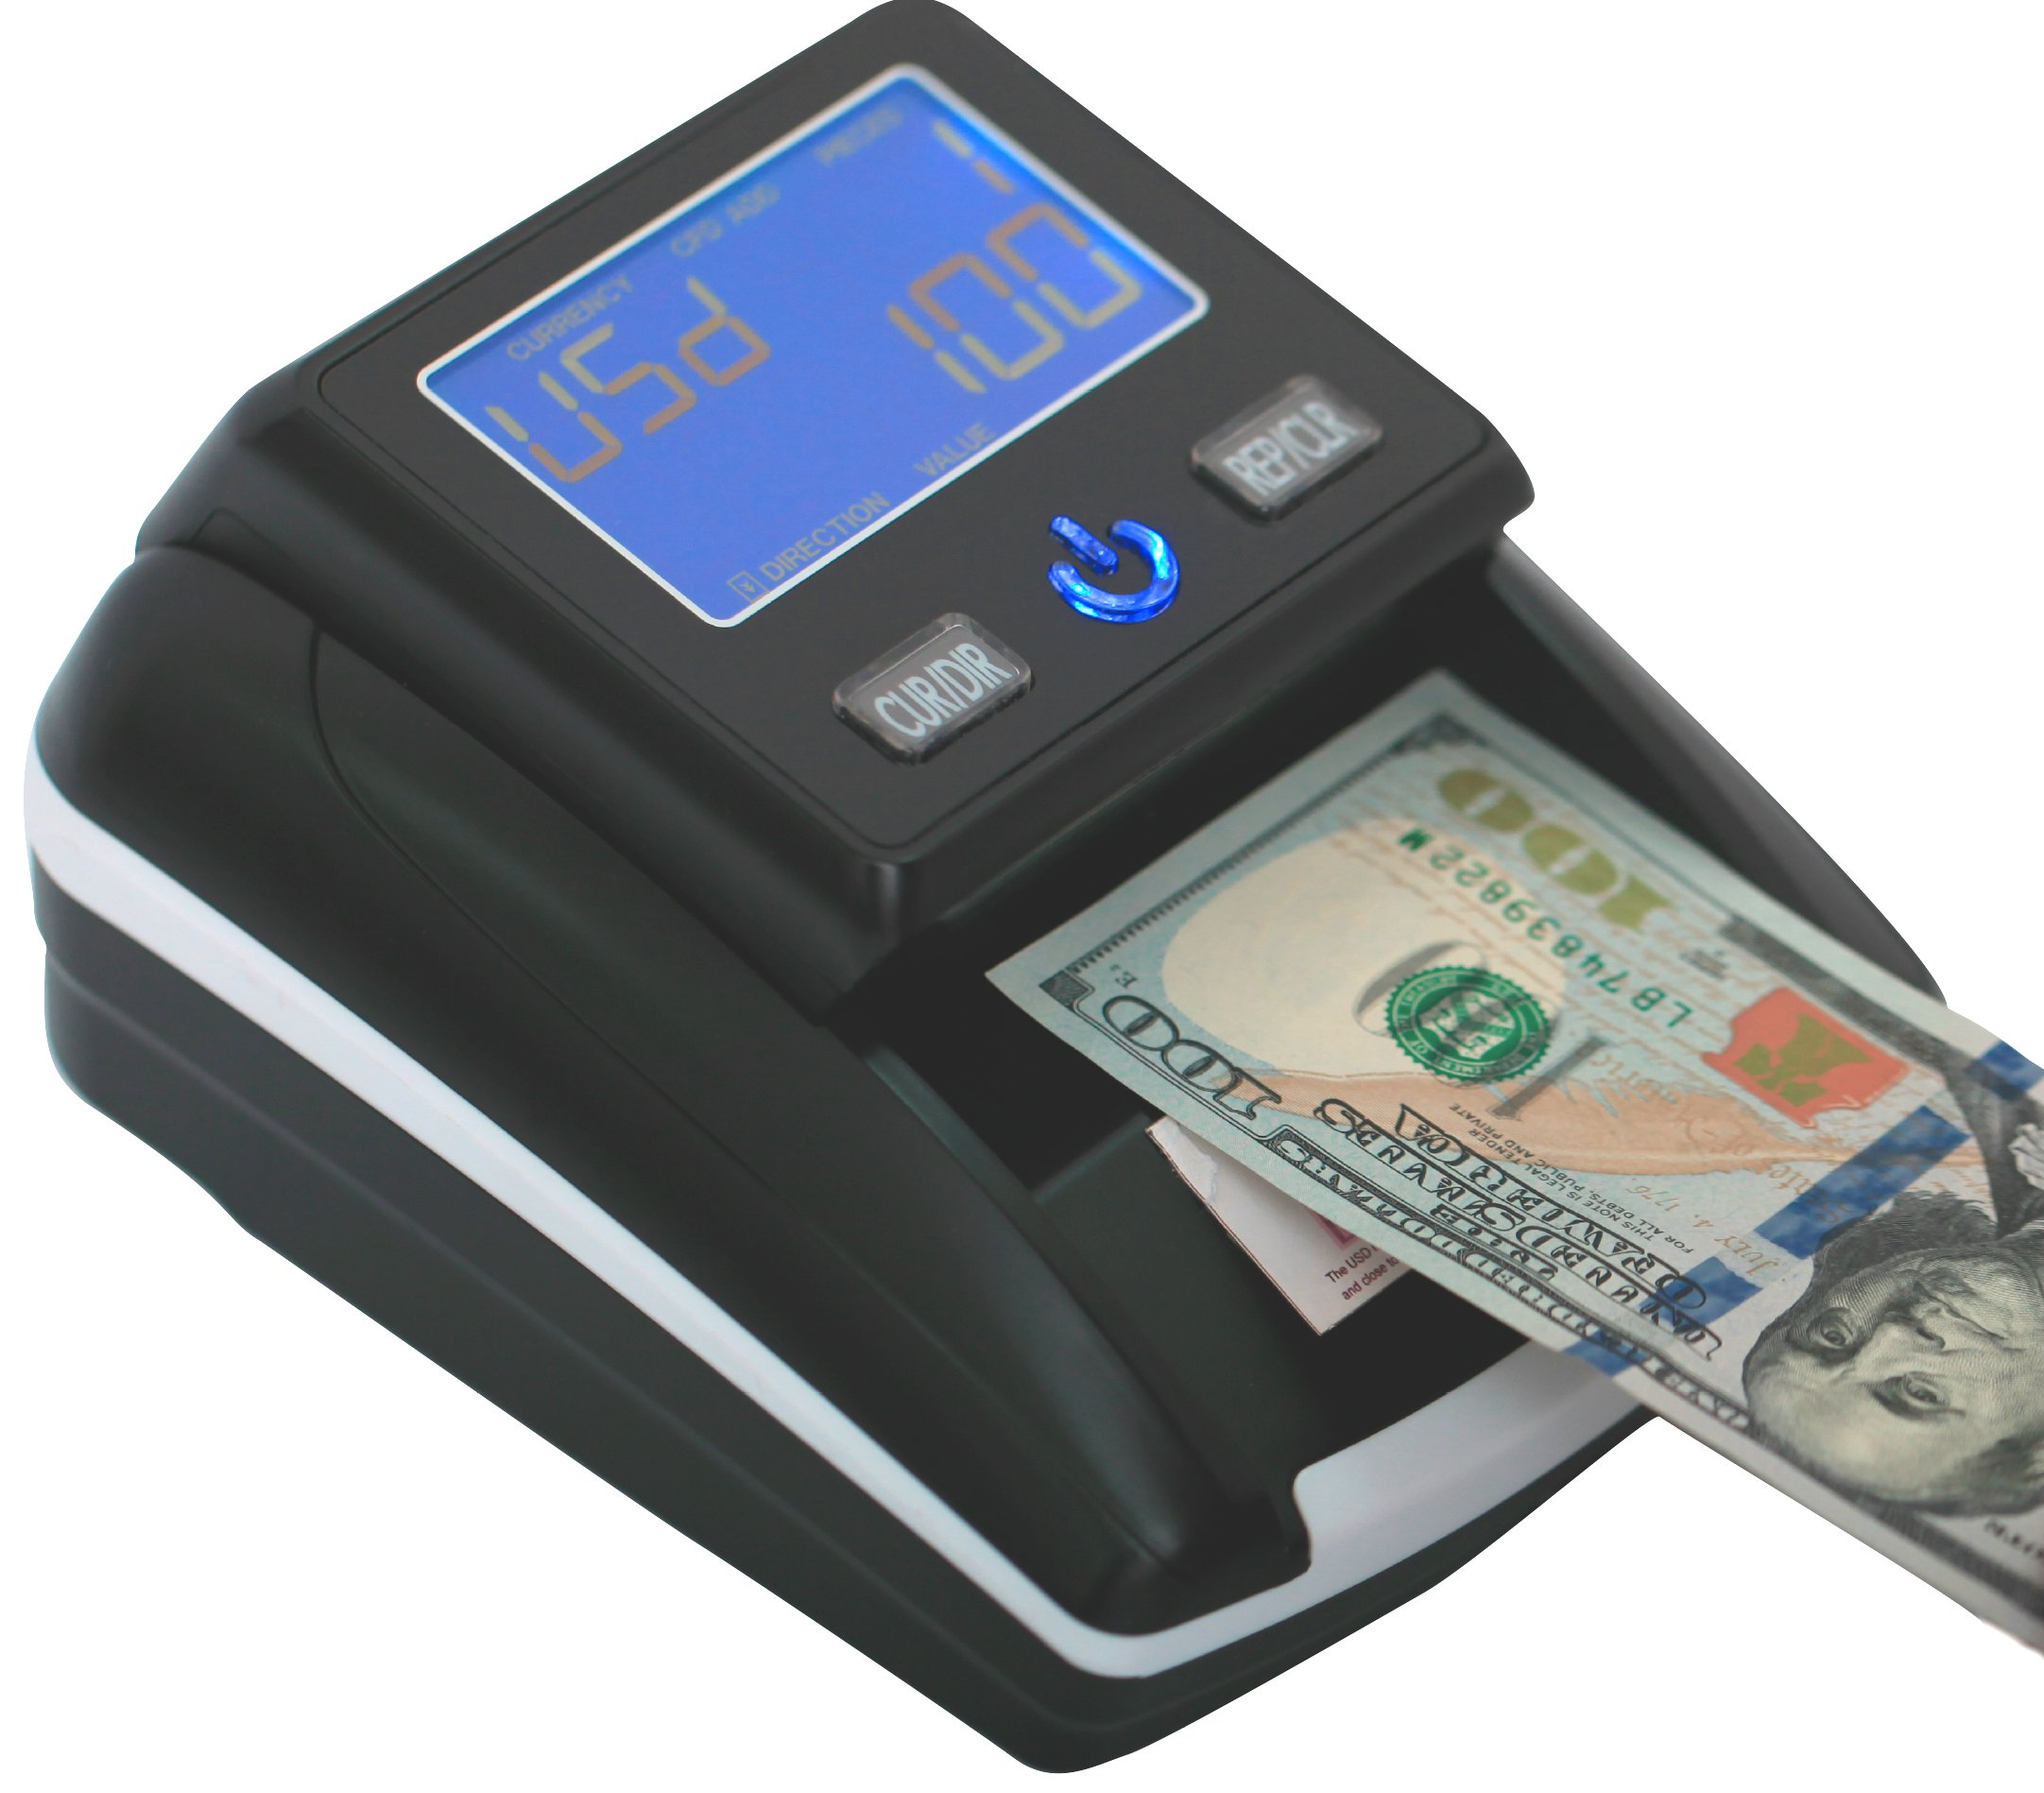 Portable 4 Way Insertion Counterfeit Bill Detector&Counter with Battery by Eko system